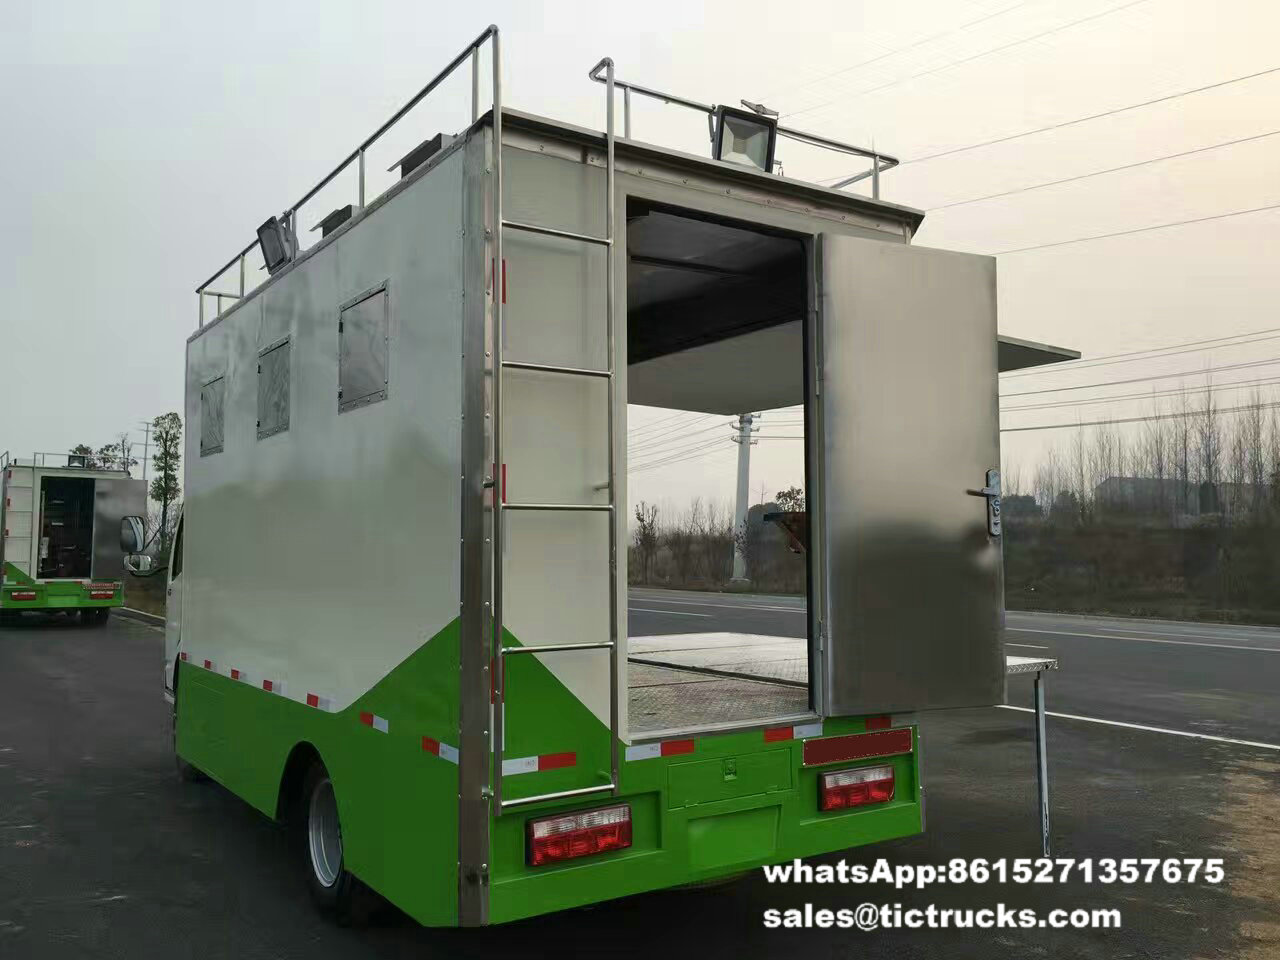 dongfeng food cooking truck-005-_1.jpg